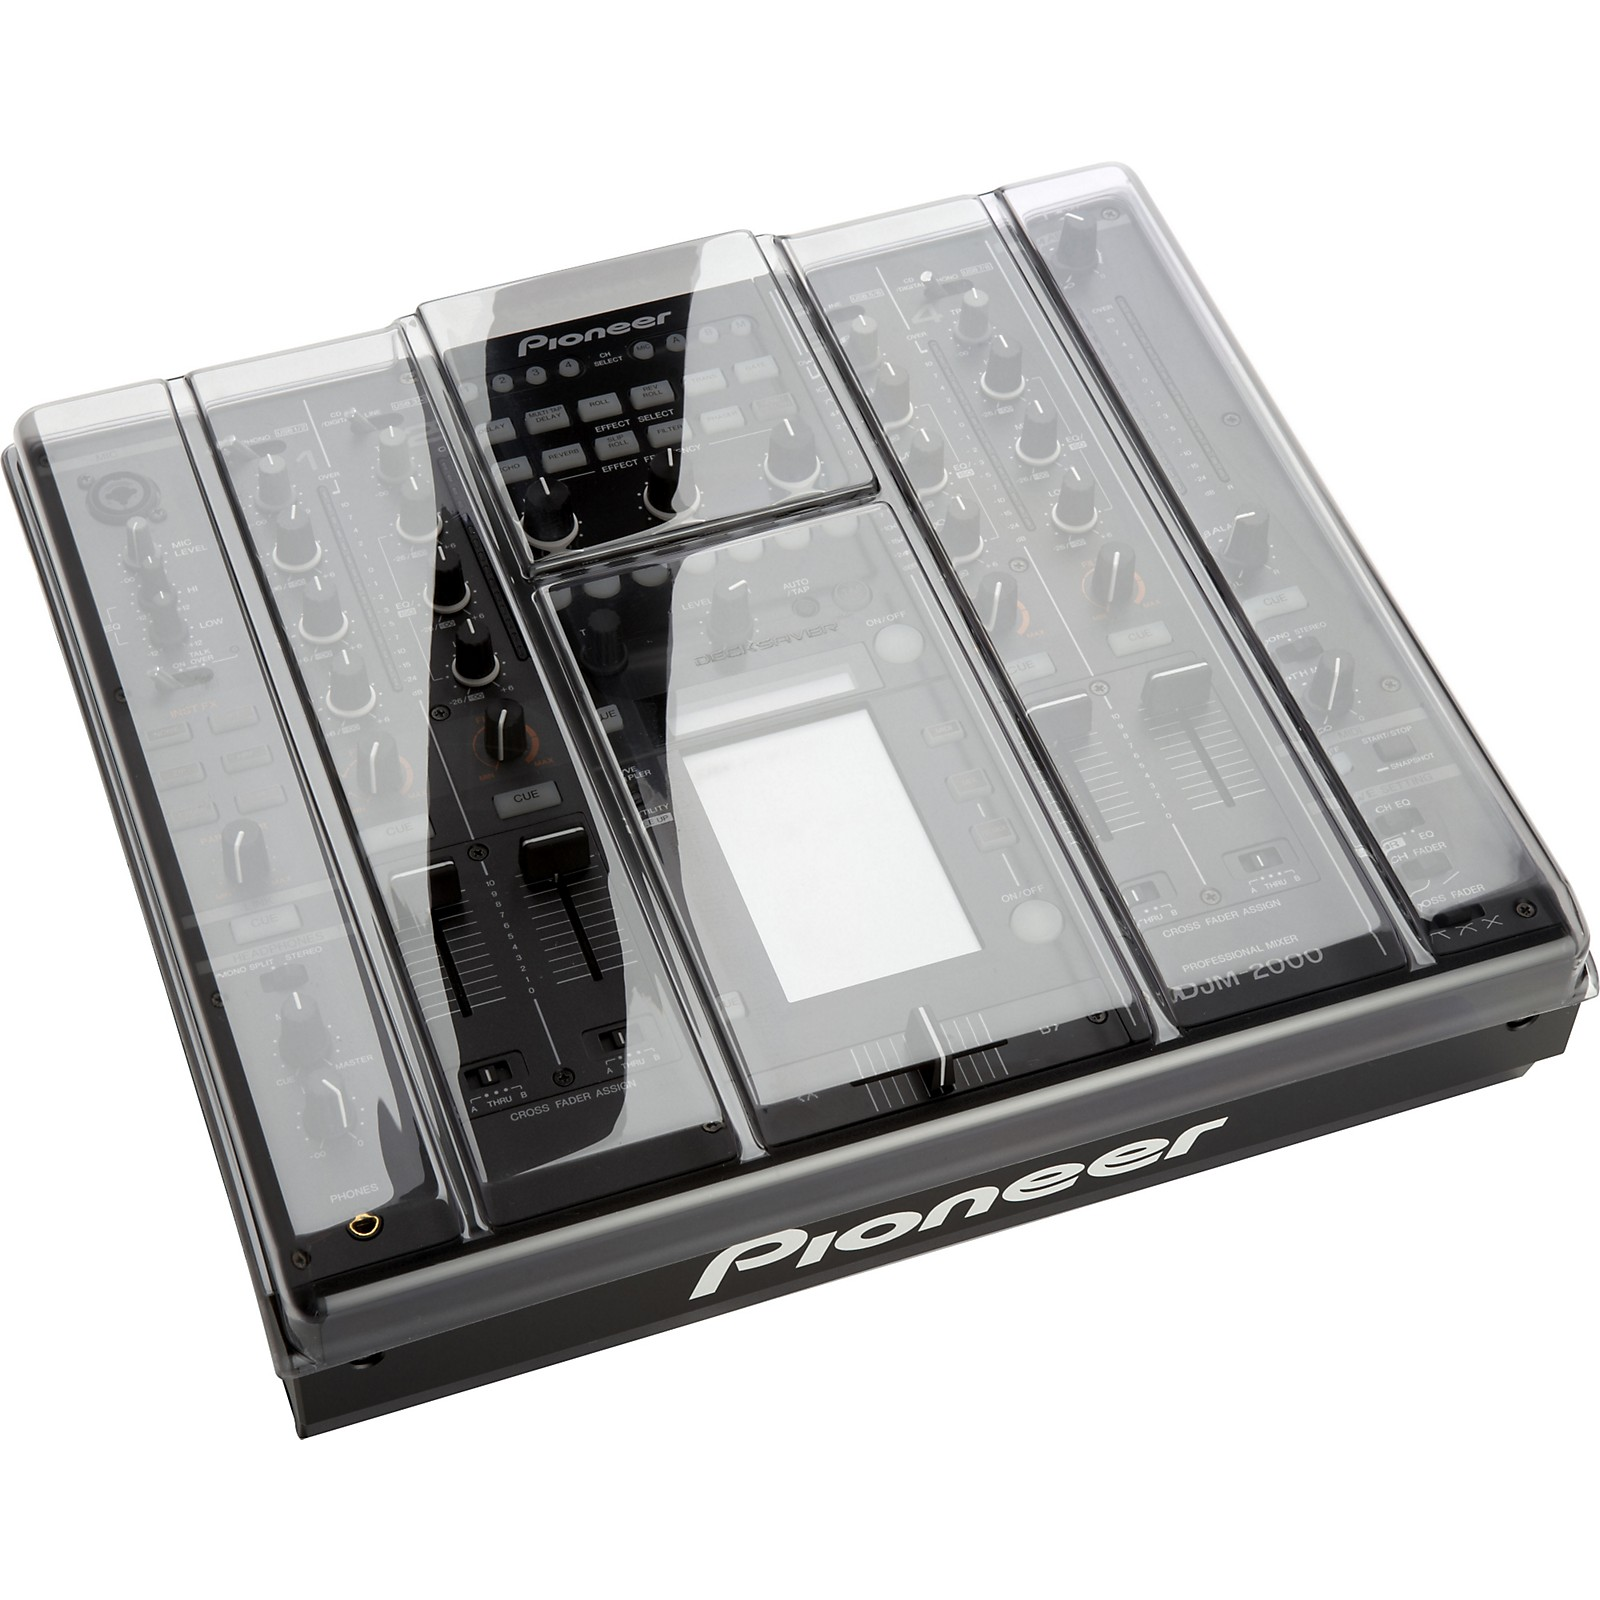 Decksaver Dust Cover and Faceplate for Pioneer DJM-2000